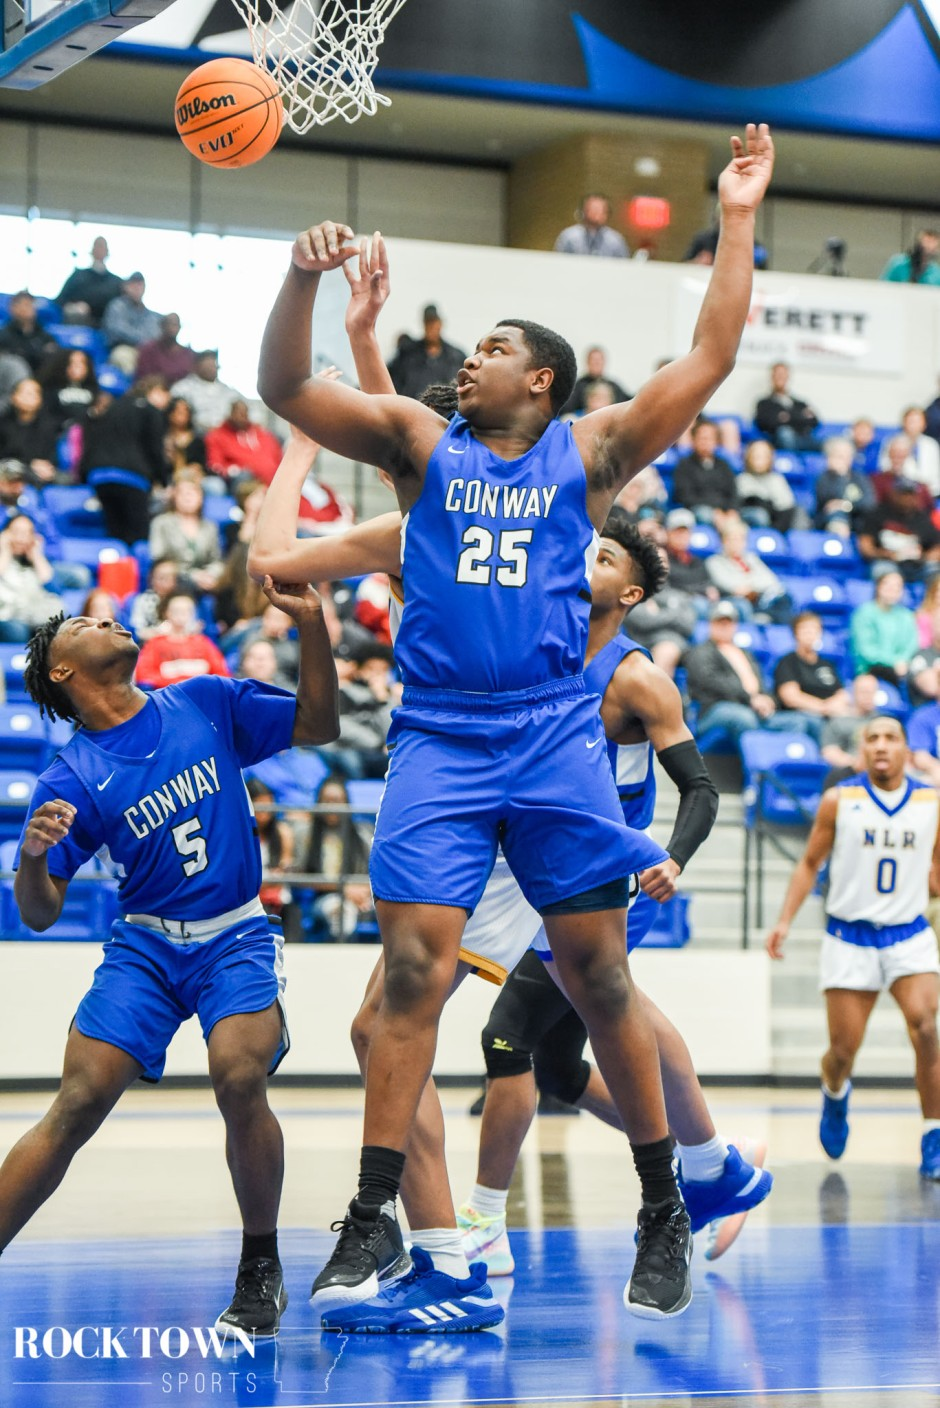 NLR_conway_bball_2020(i)-29